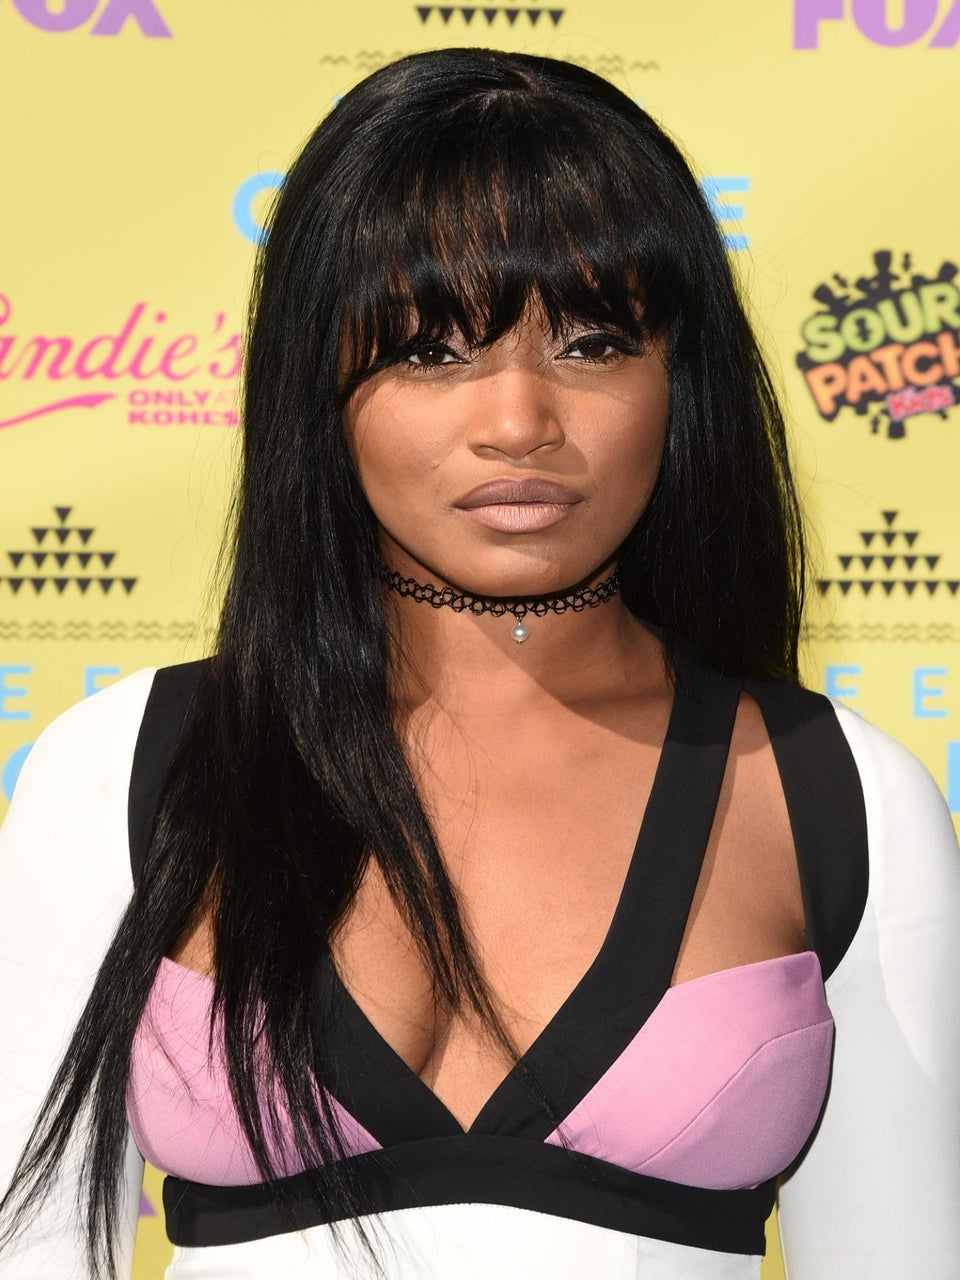 Keke Palmer on Her 'Scream Queens' Character: 'Zayday is Not a Stereotypically Black Character'